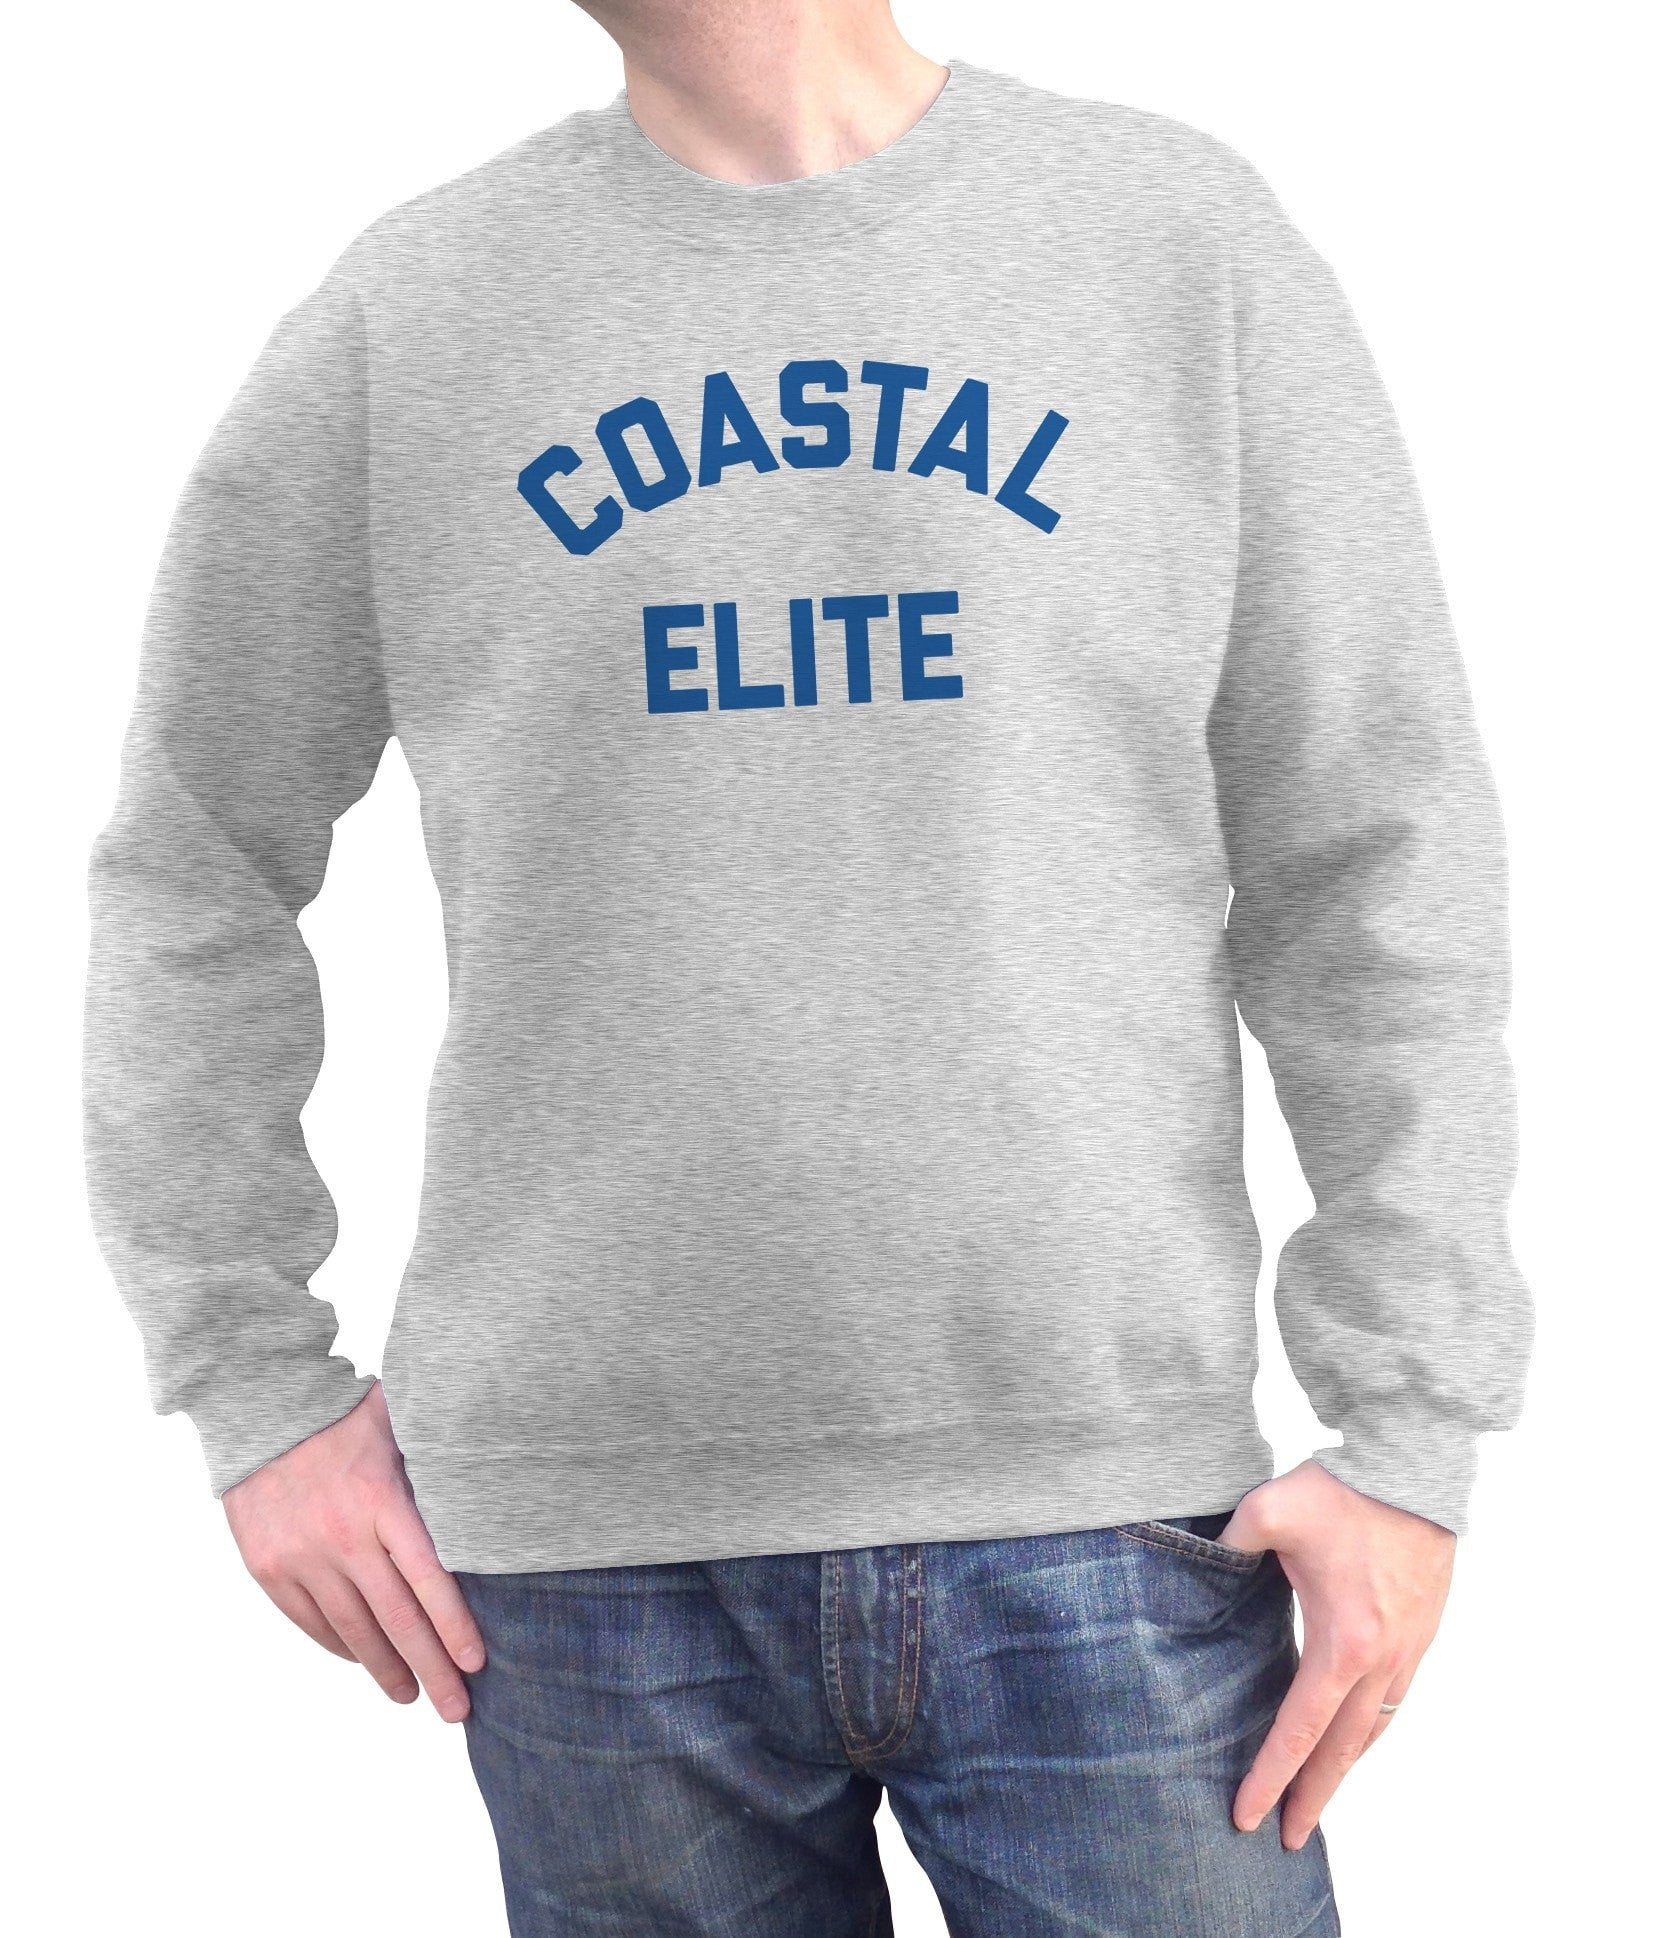 Unisex Coastal Elite Sweatshirt